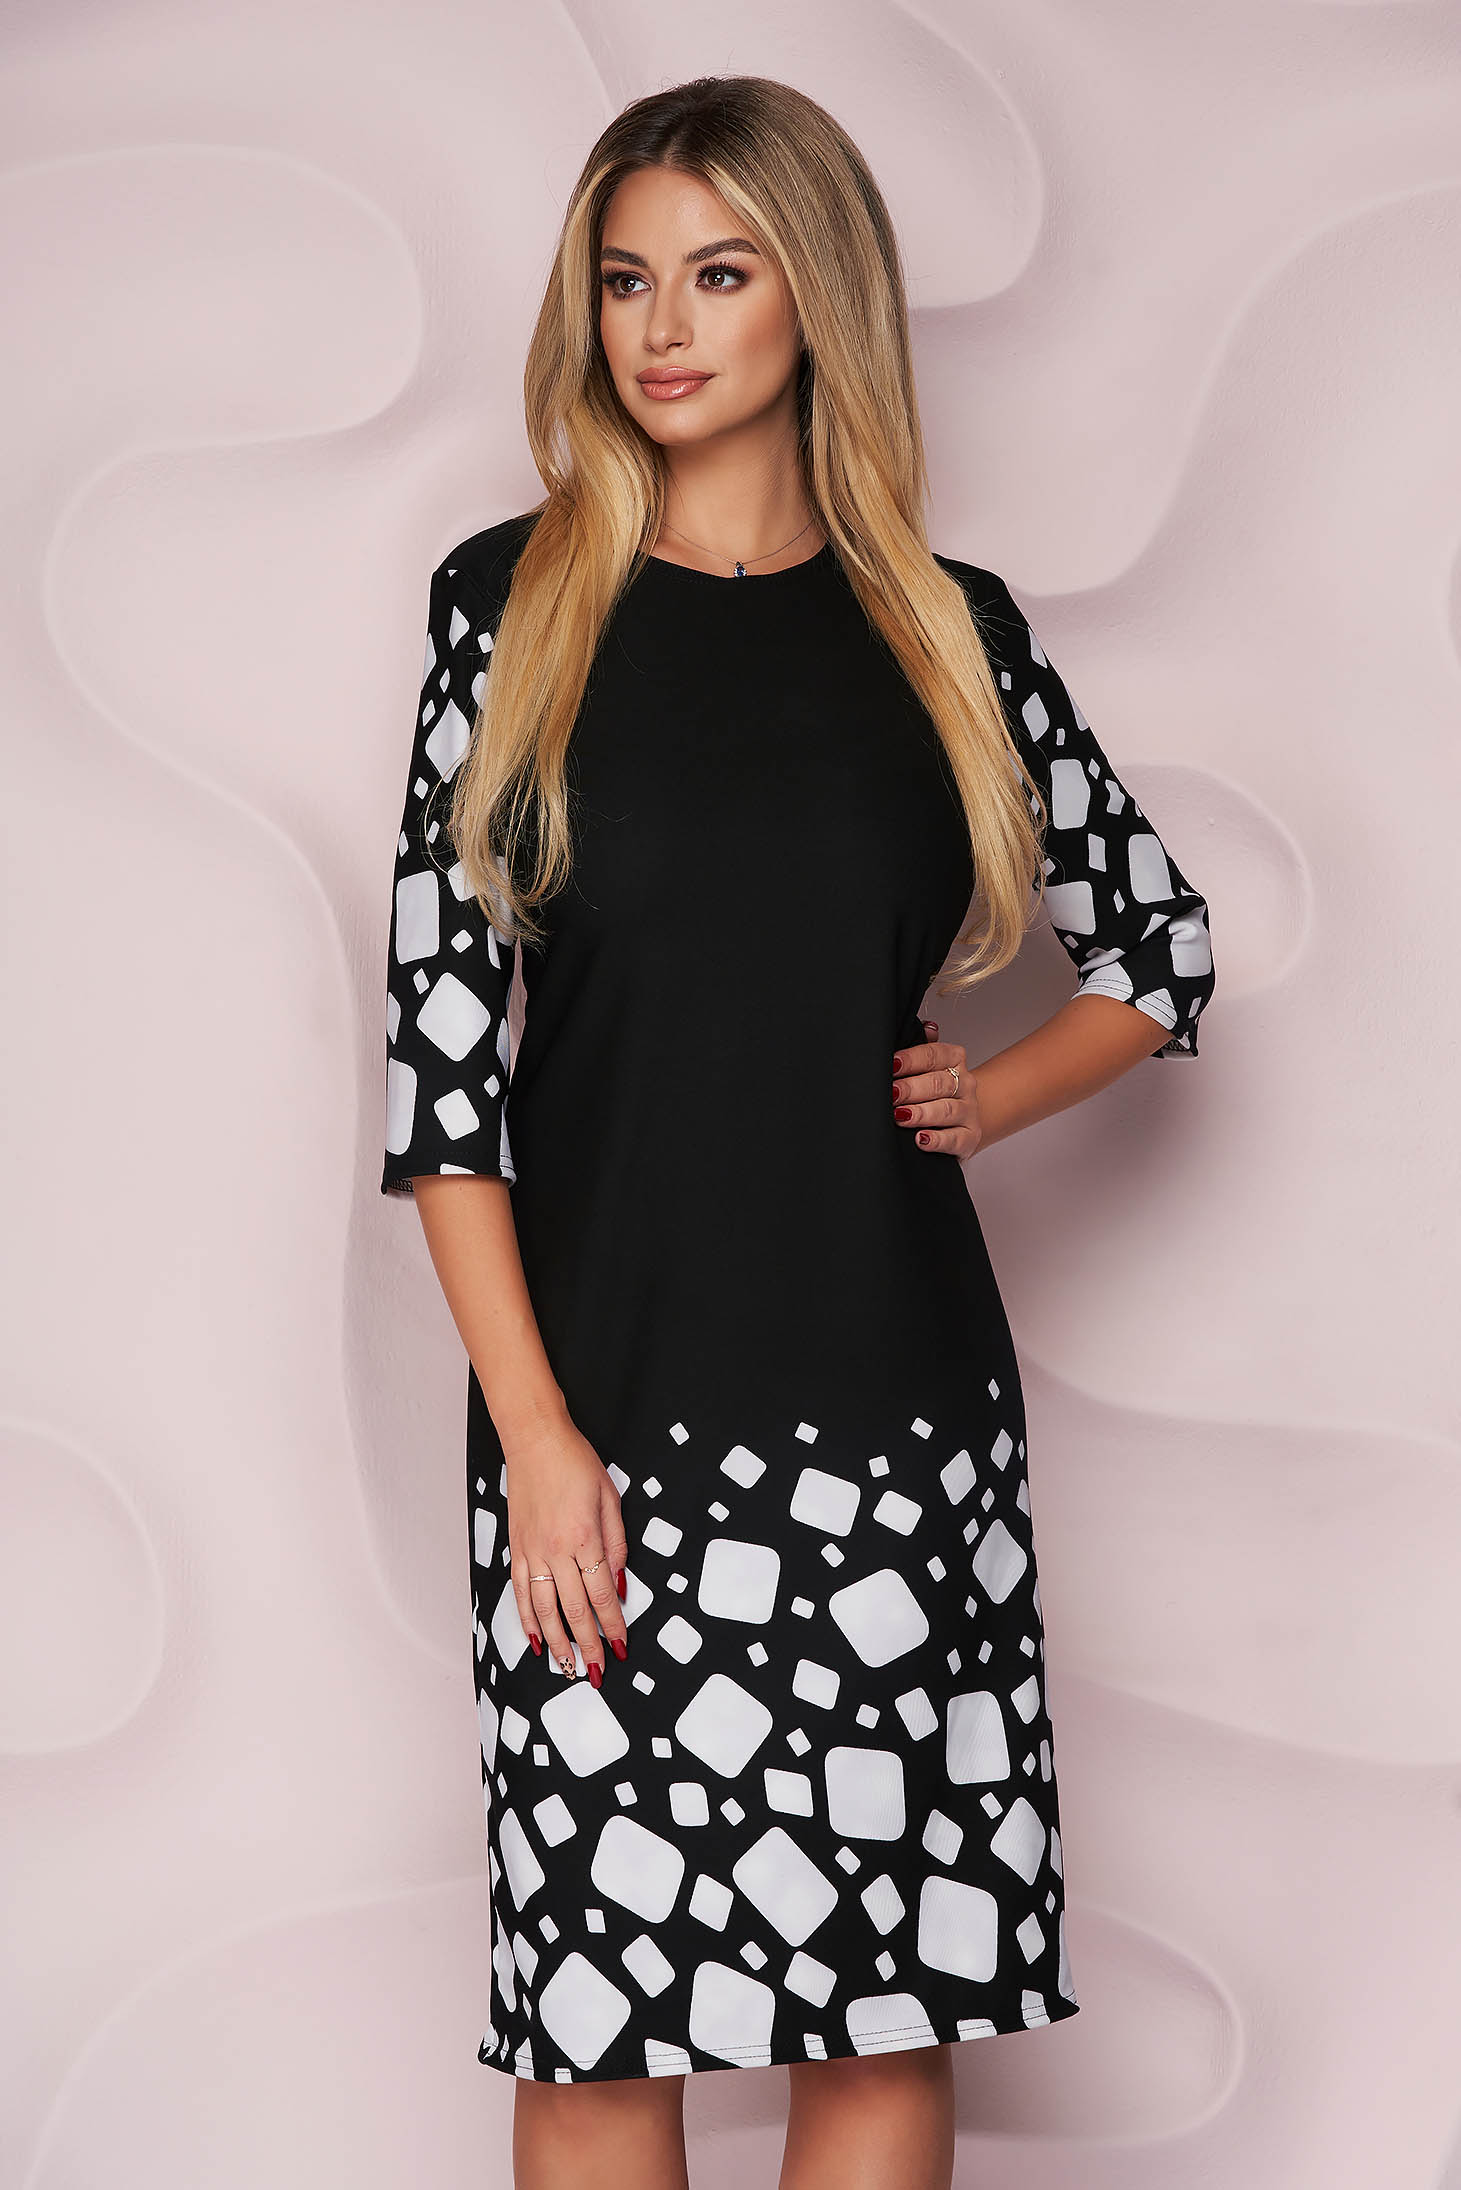 Dress office straight midi with graphic details slightly elastic fabric light material